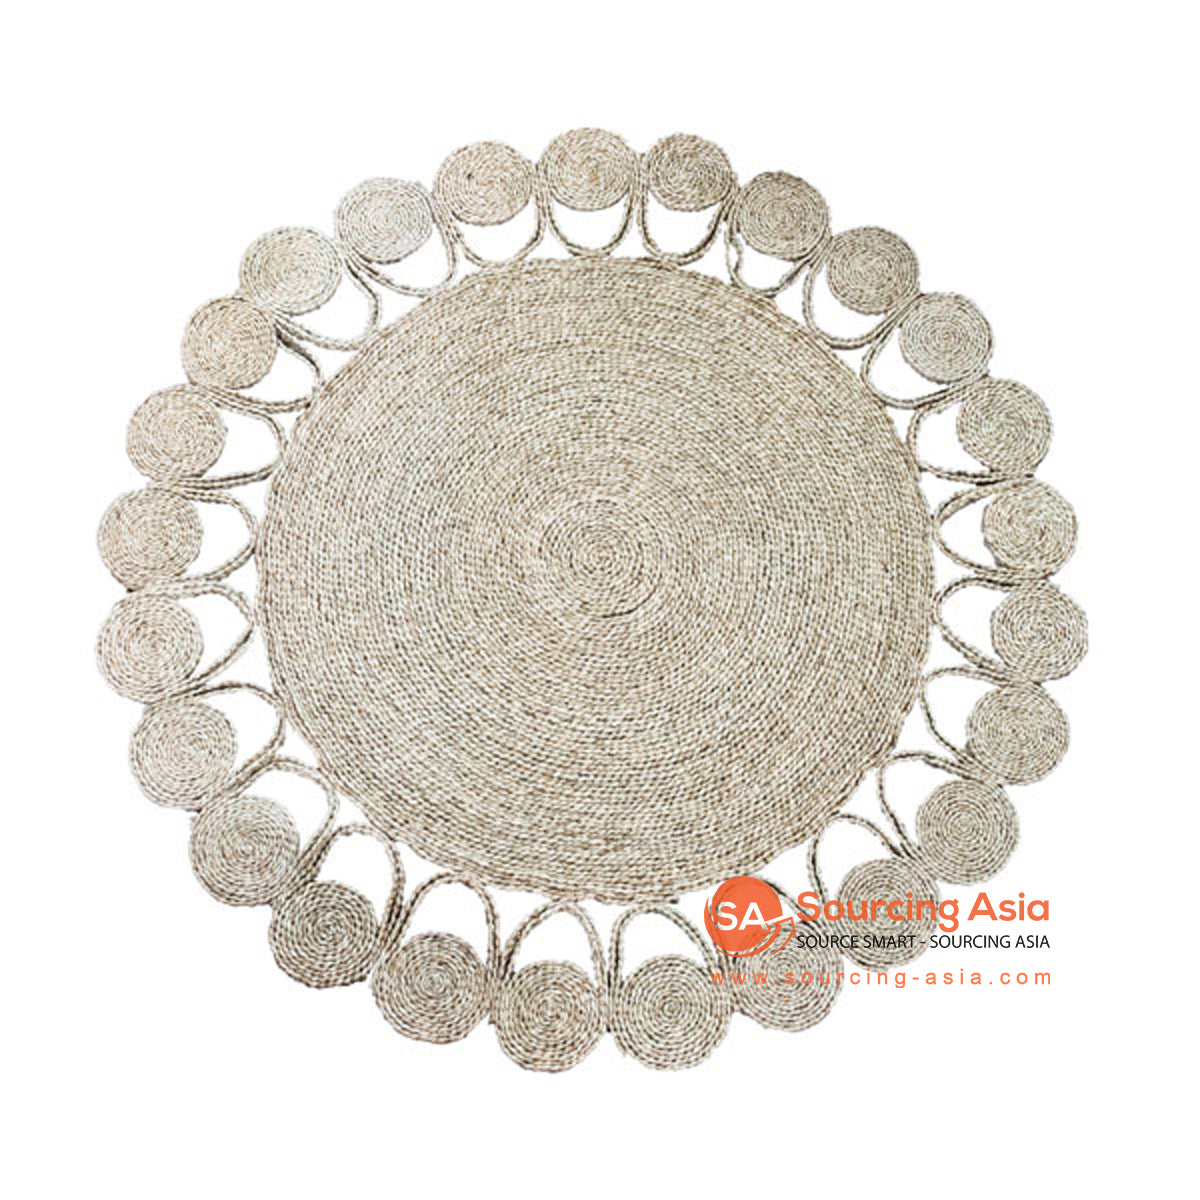 SHL190 NATURAL SEAGRASS DECORATIVE ROUND RUG